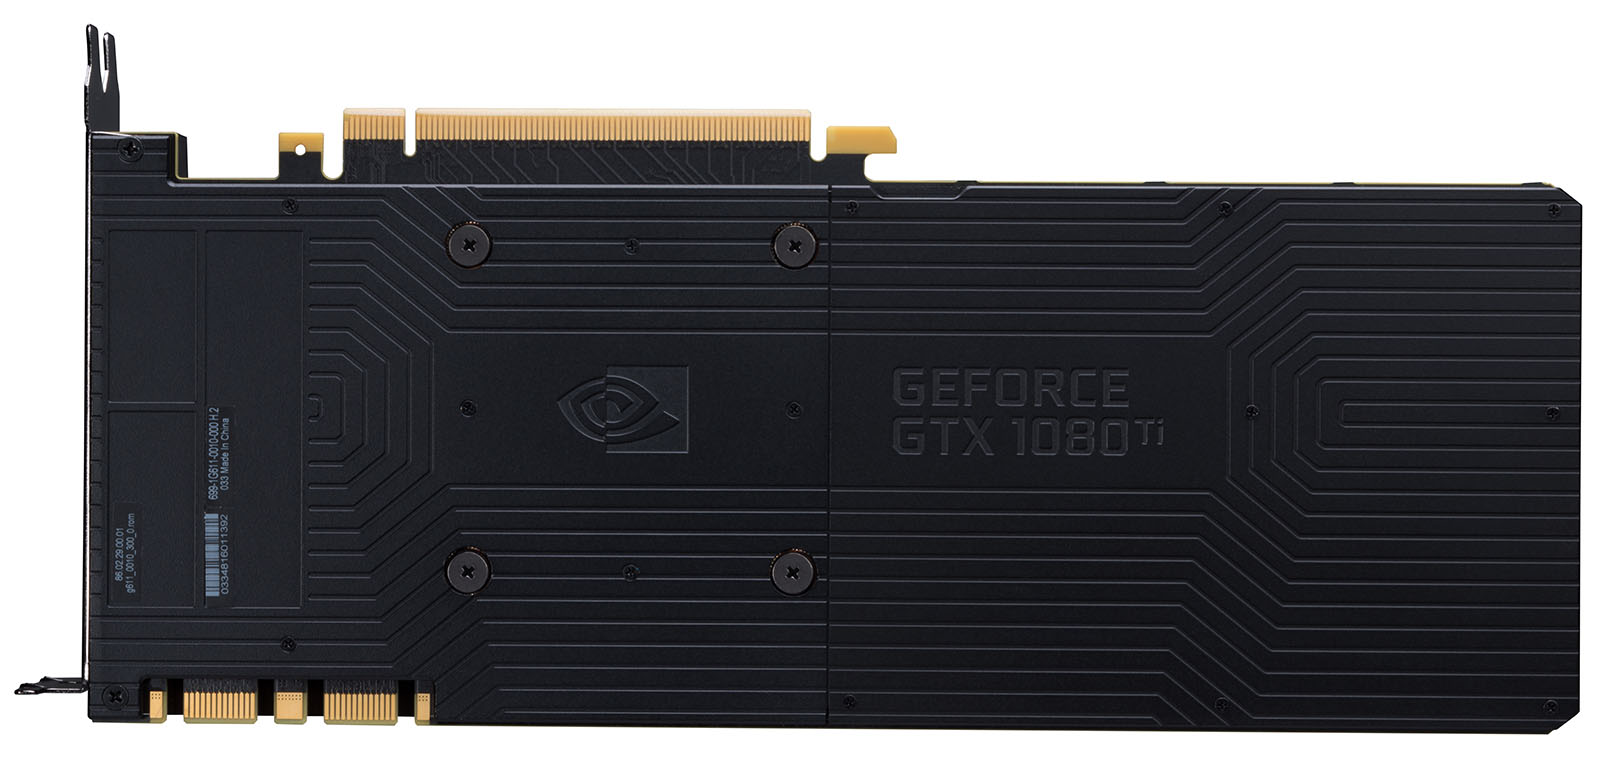 NVIDIA GeForce GTX 1080 Ti Review: A Look At 4K & Ultrawide